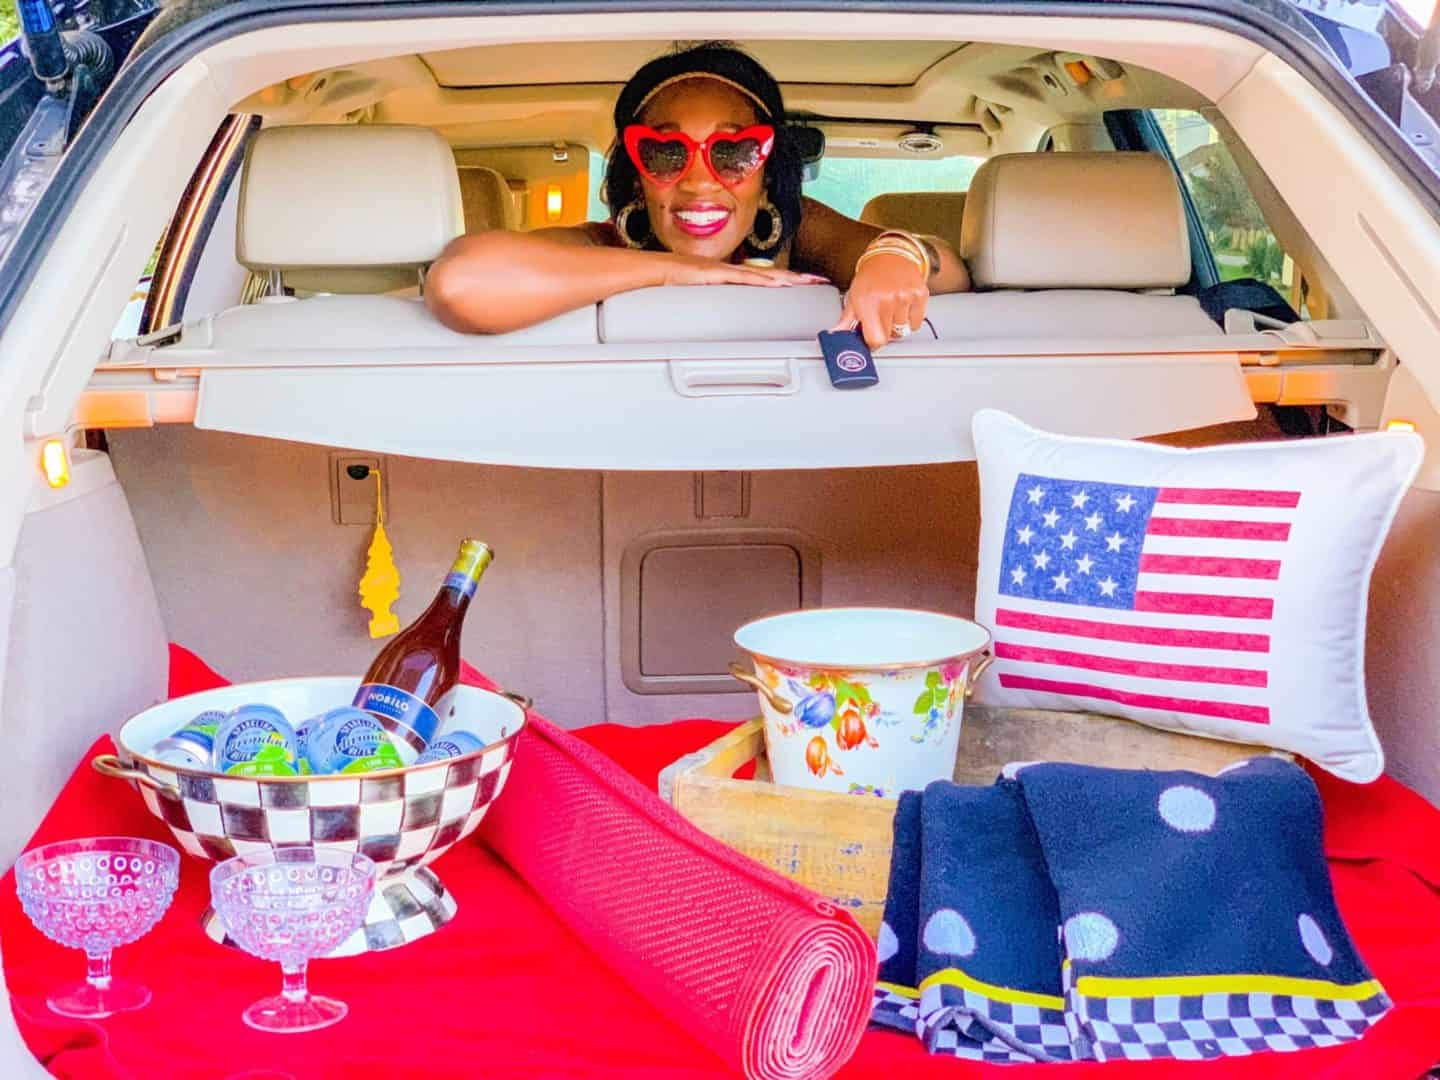 Shaunda Necole Tailgate Glamping Holiday Weekends by the shore with Cadillac + Sneak Peak of 5 Hampton Roads Beaches